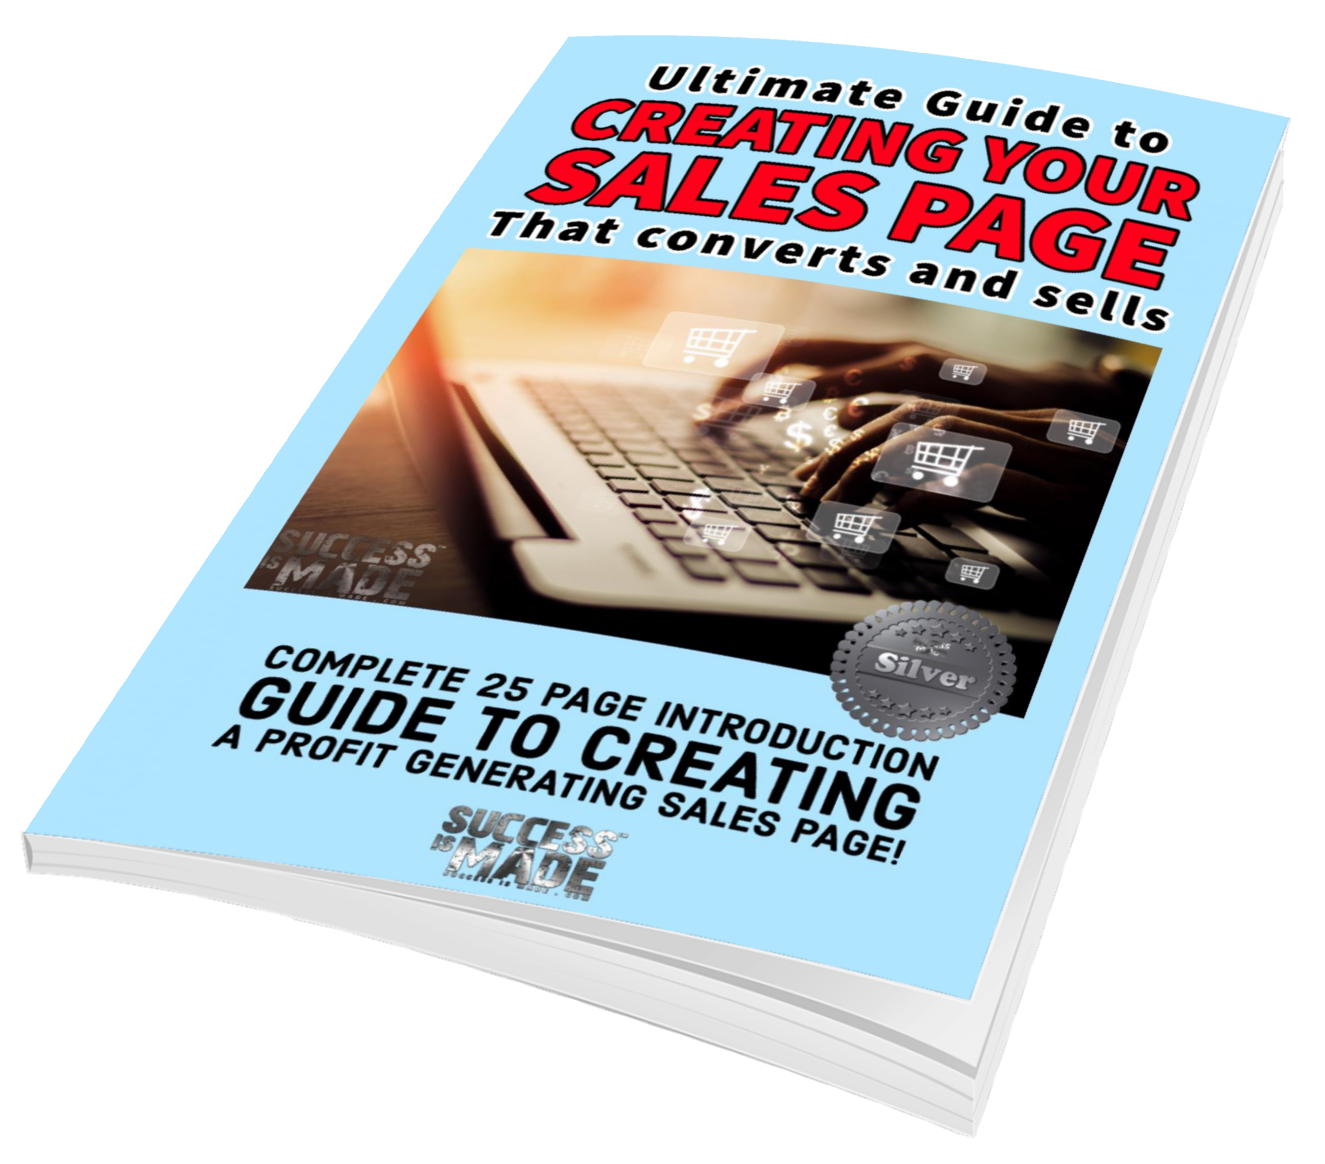 Creating Your Sales Page